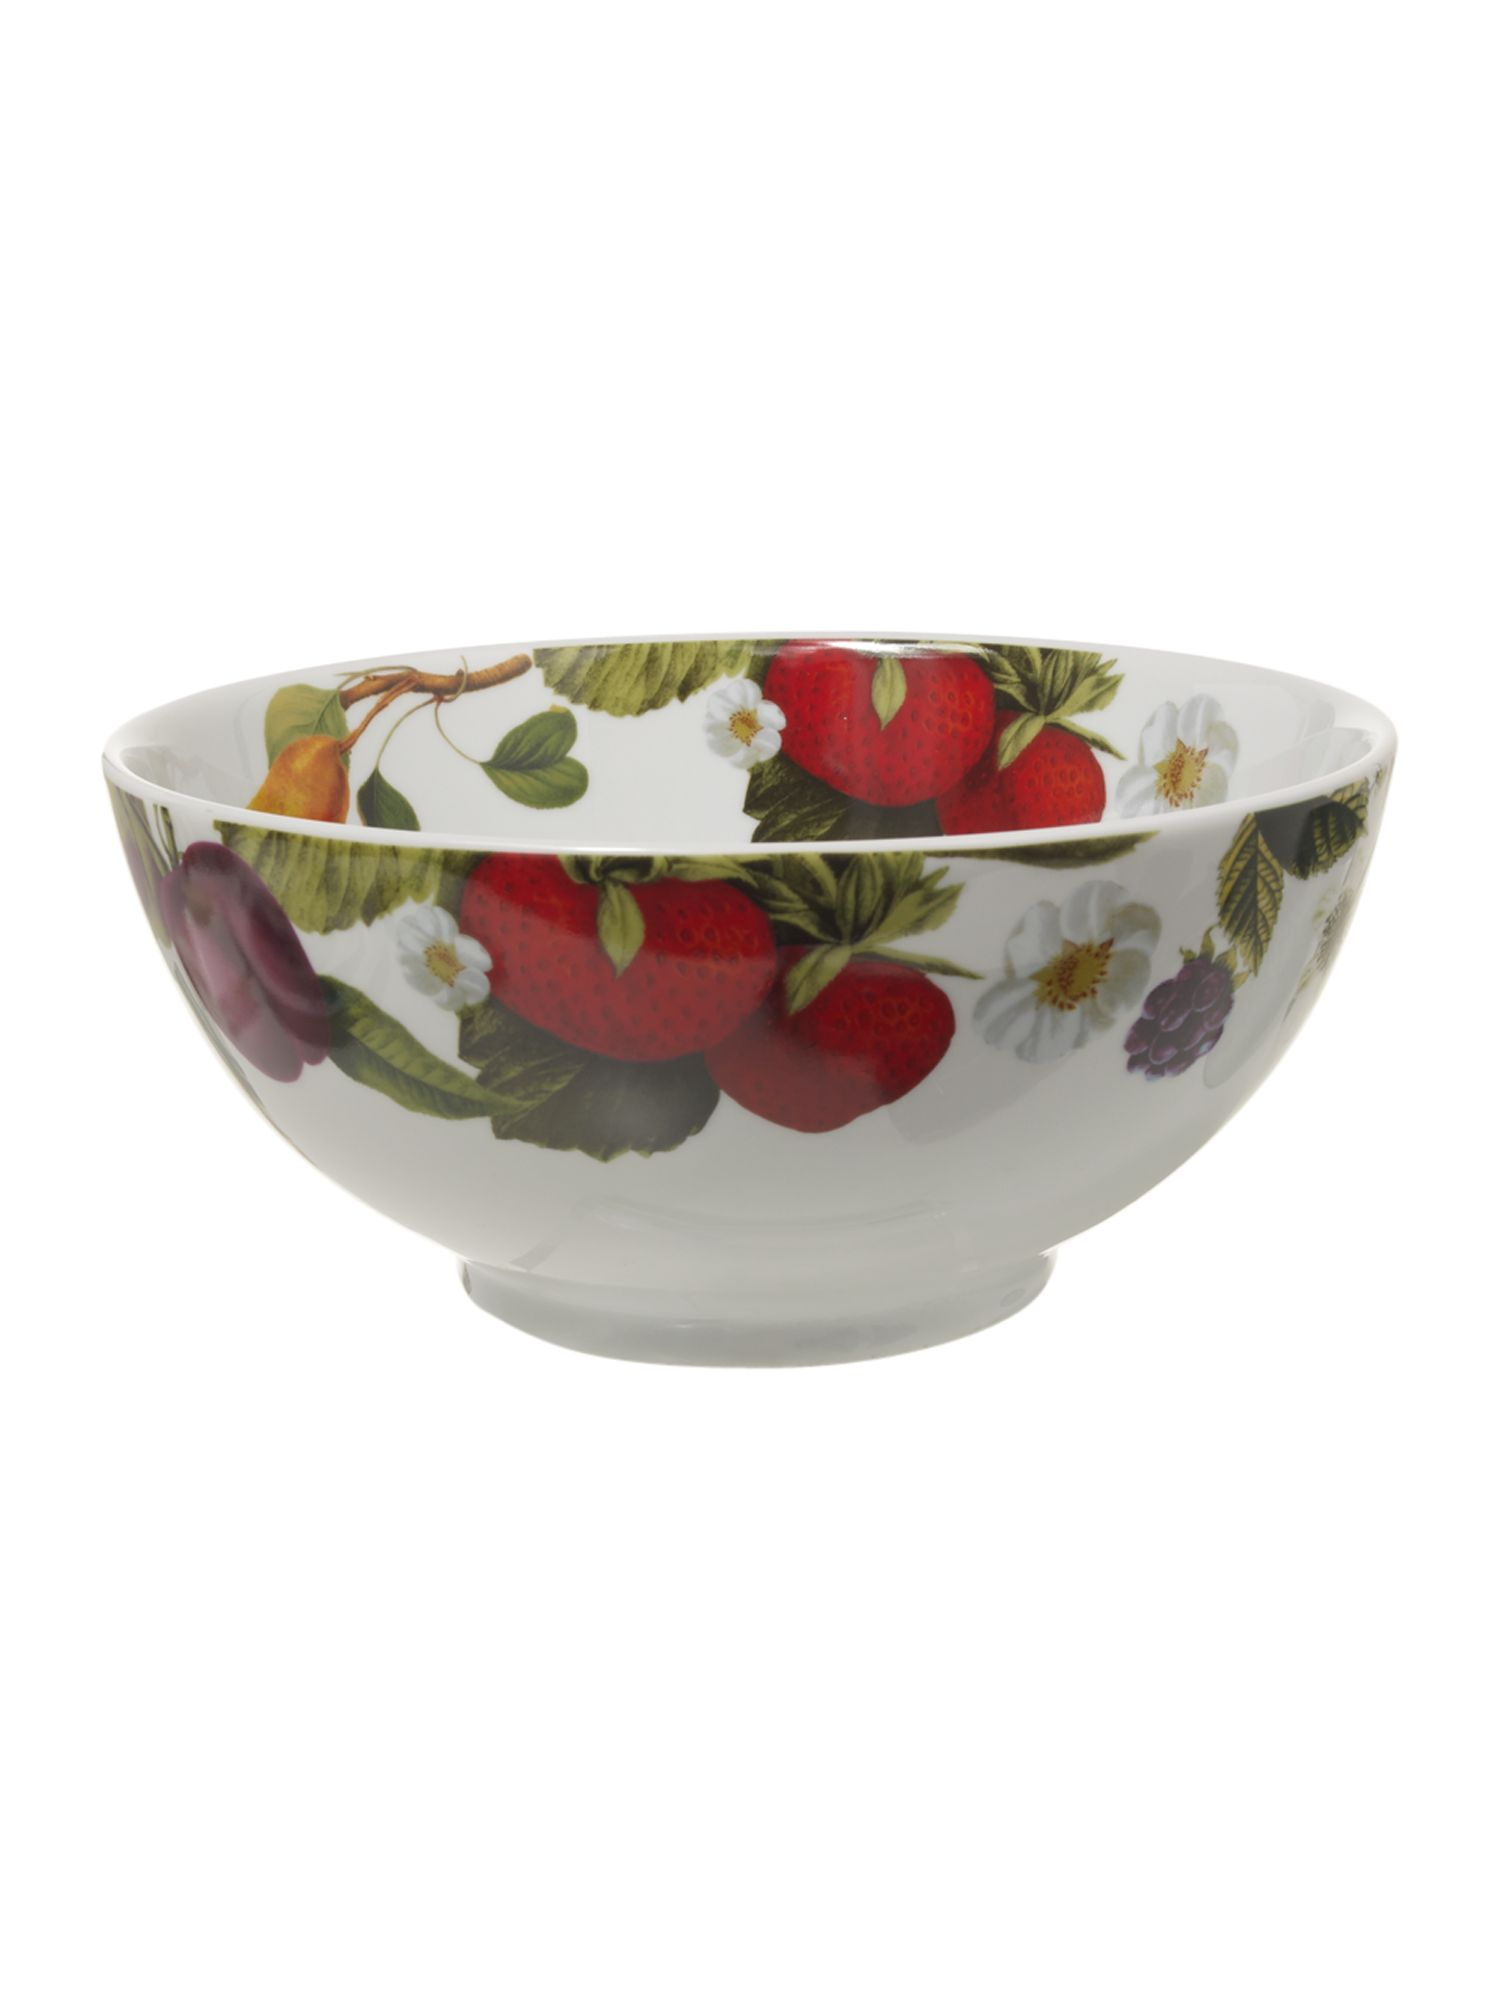 Botanical fruits serving bowl